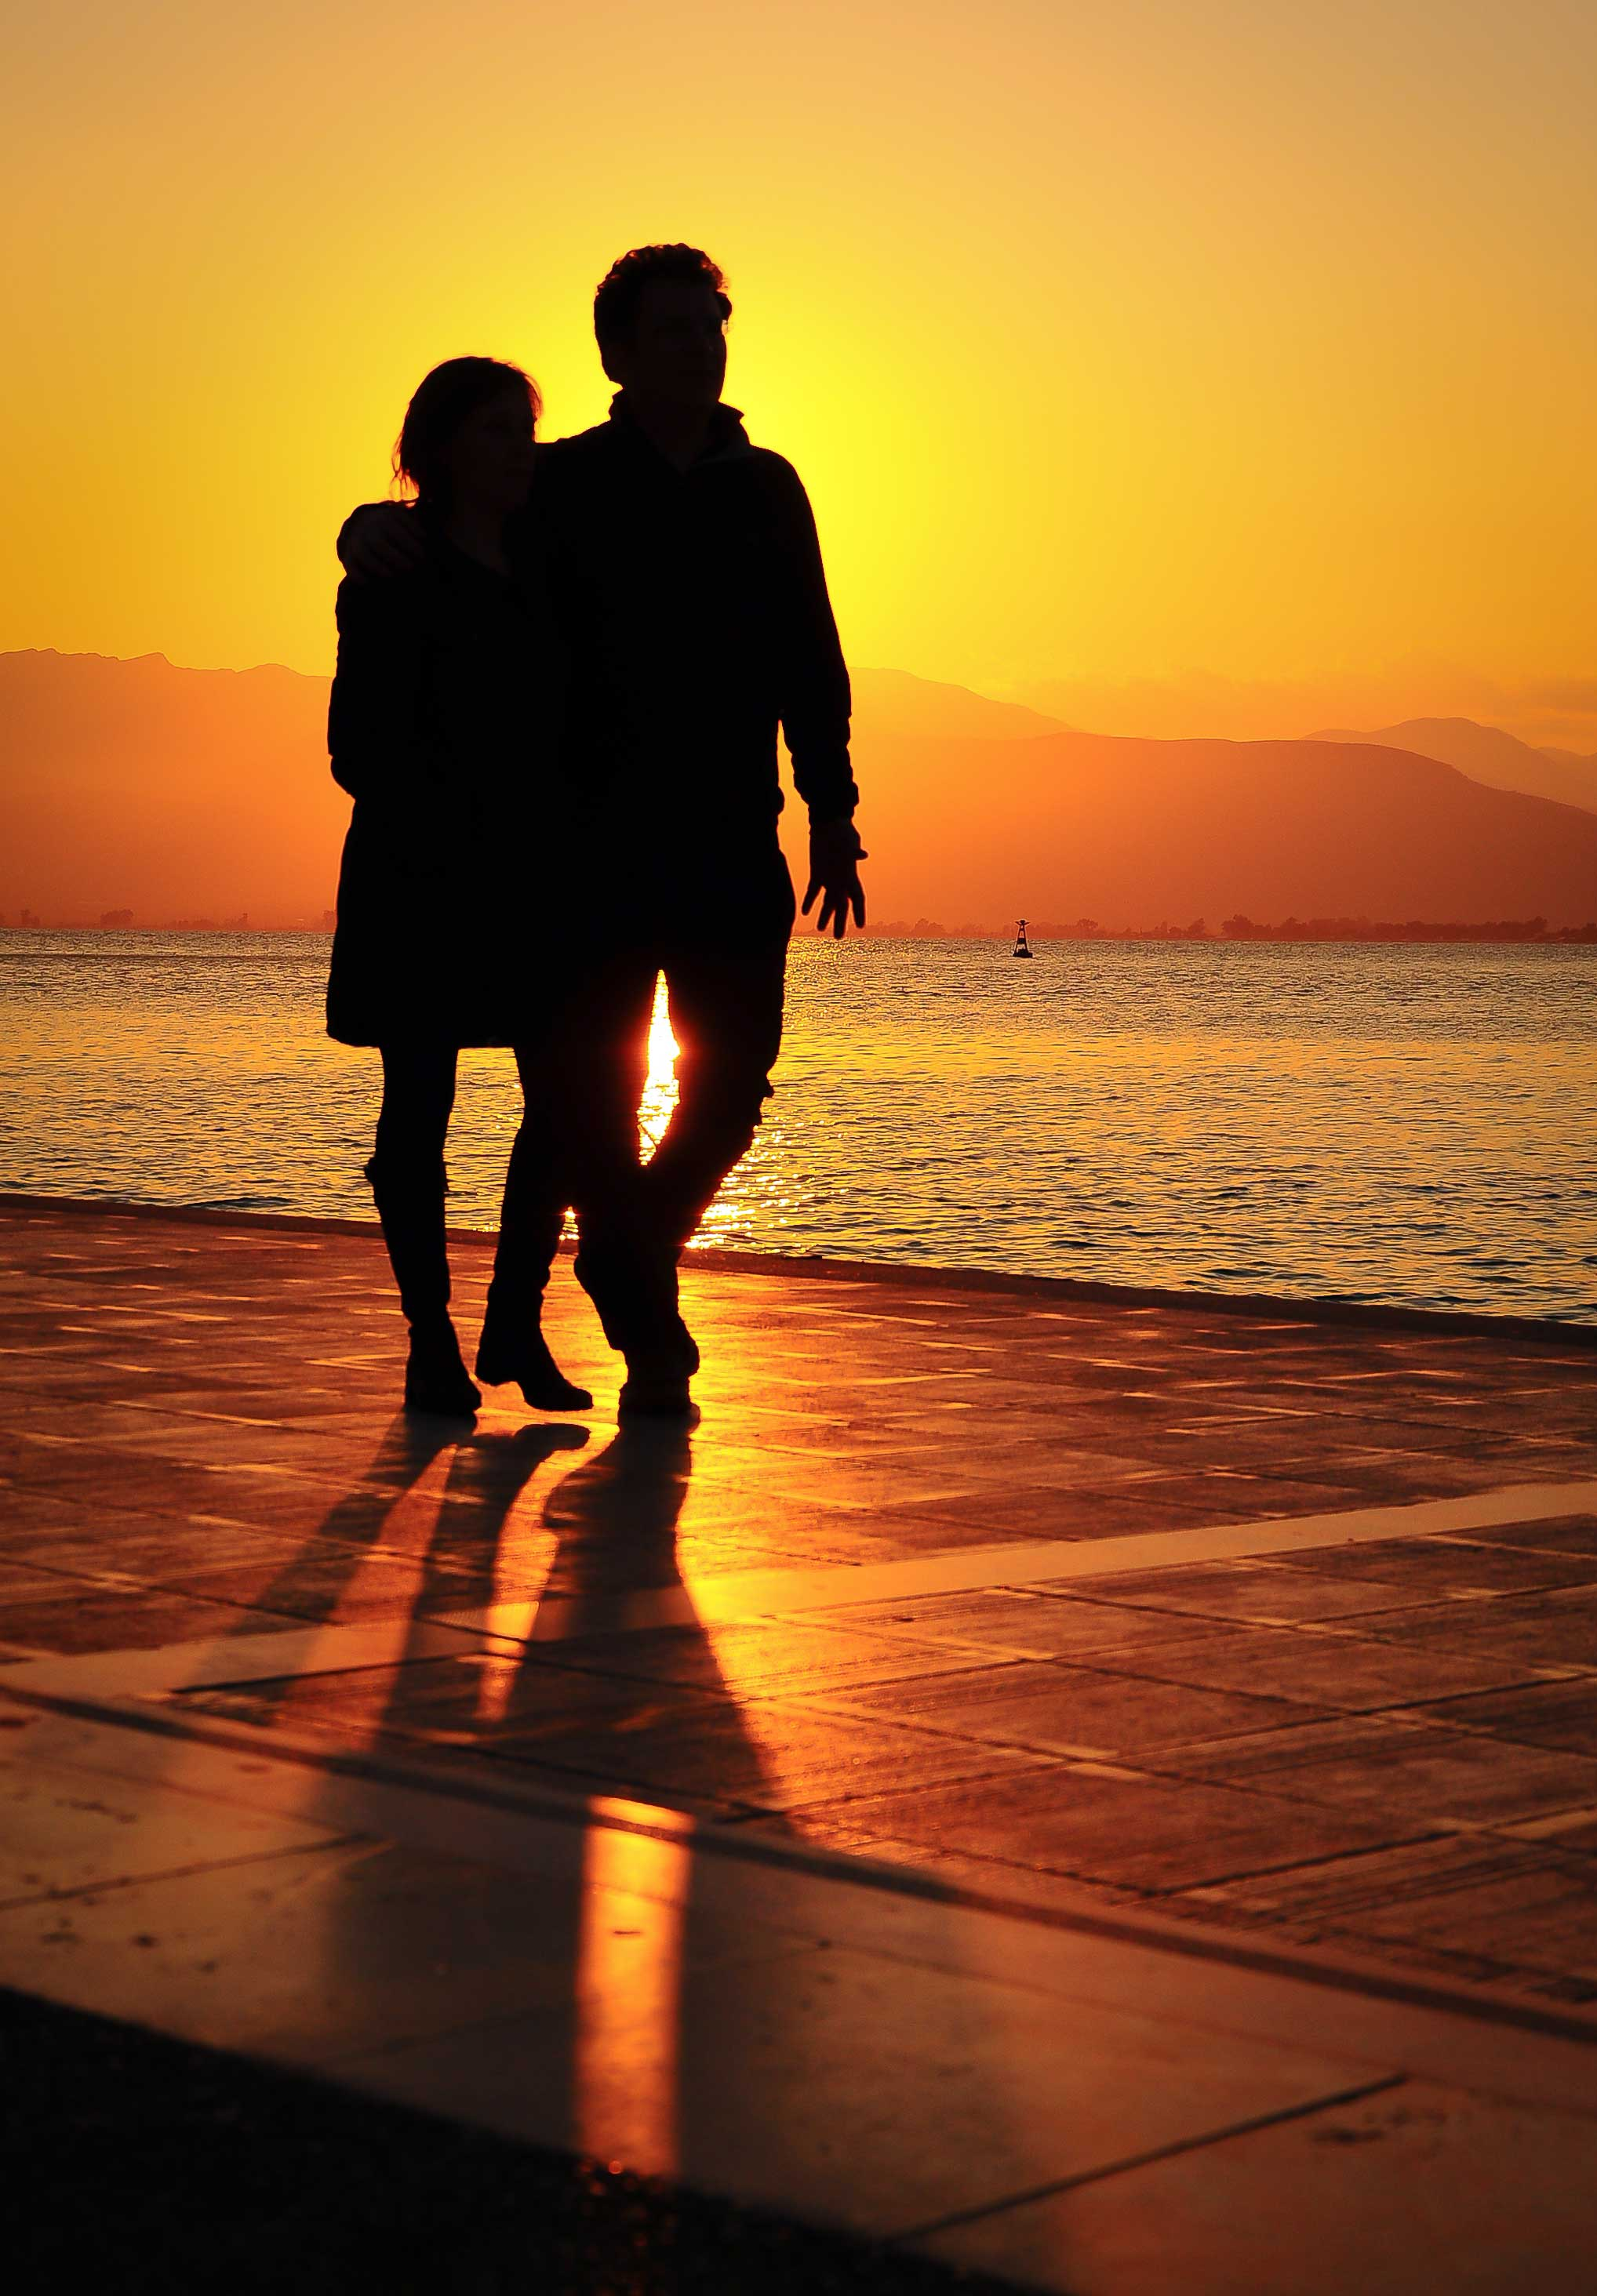 Love Wallpapers Set : 15+ Pictures of Love couples at Sunset, couple Sunset ...